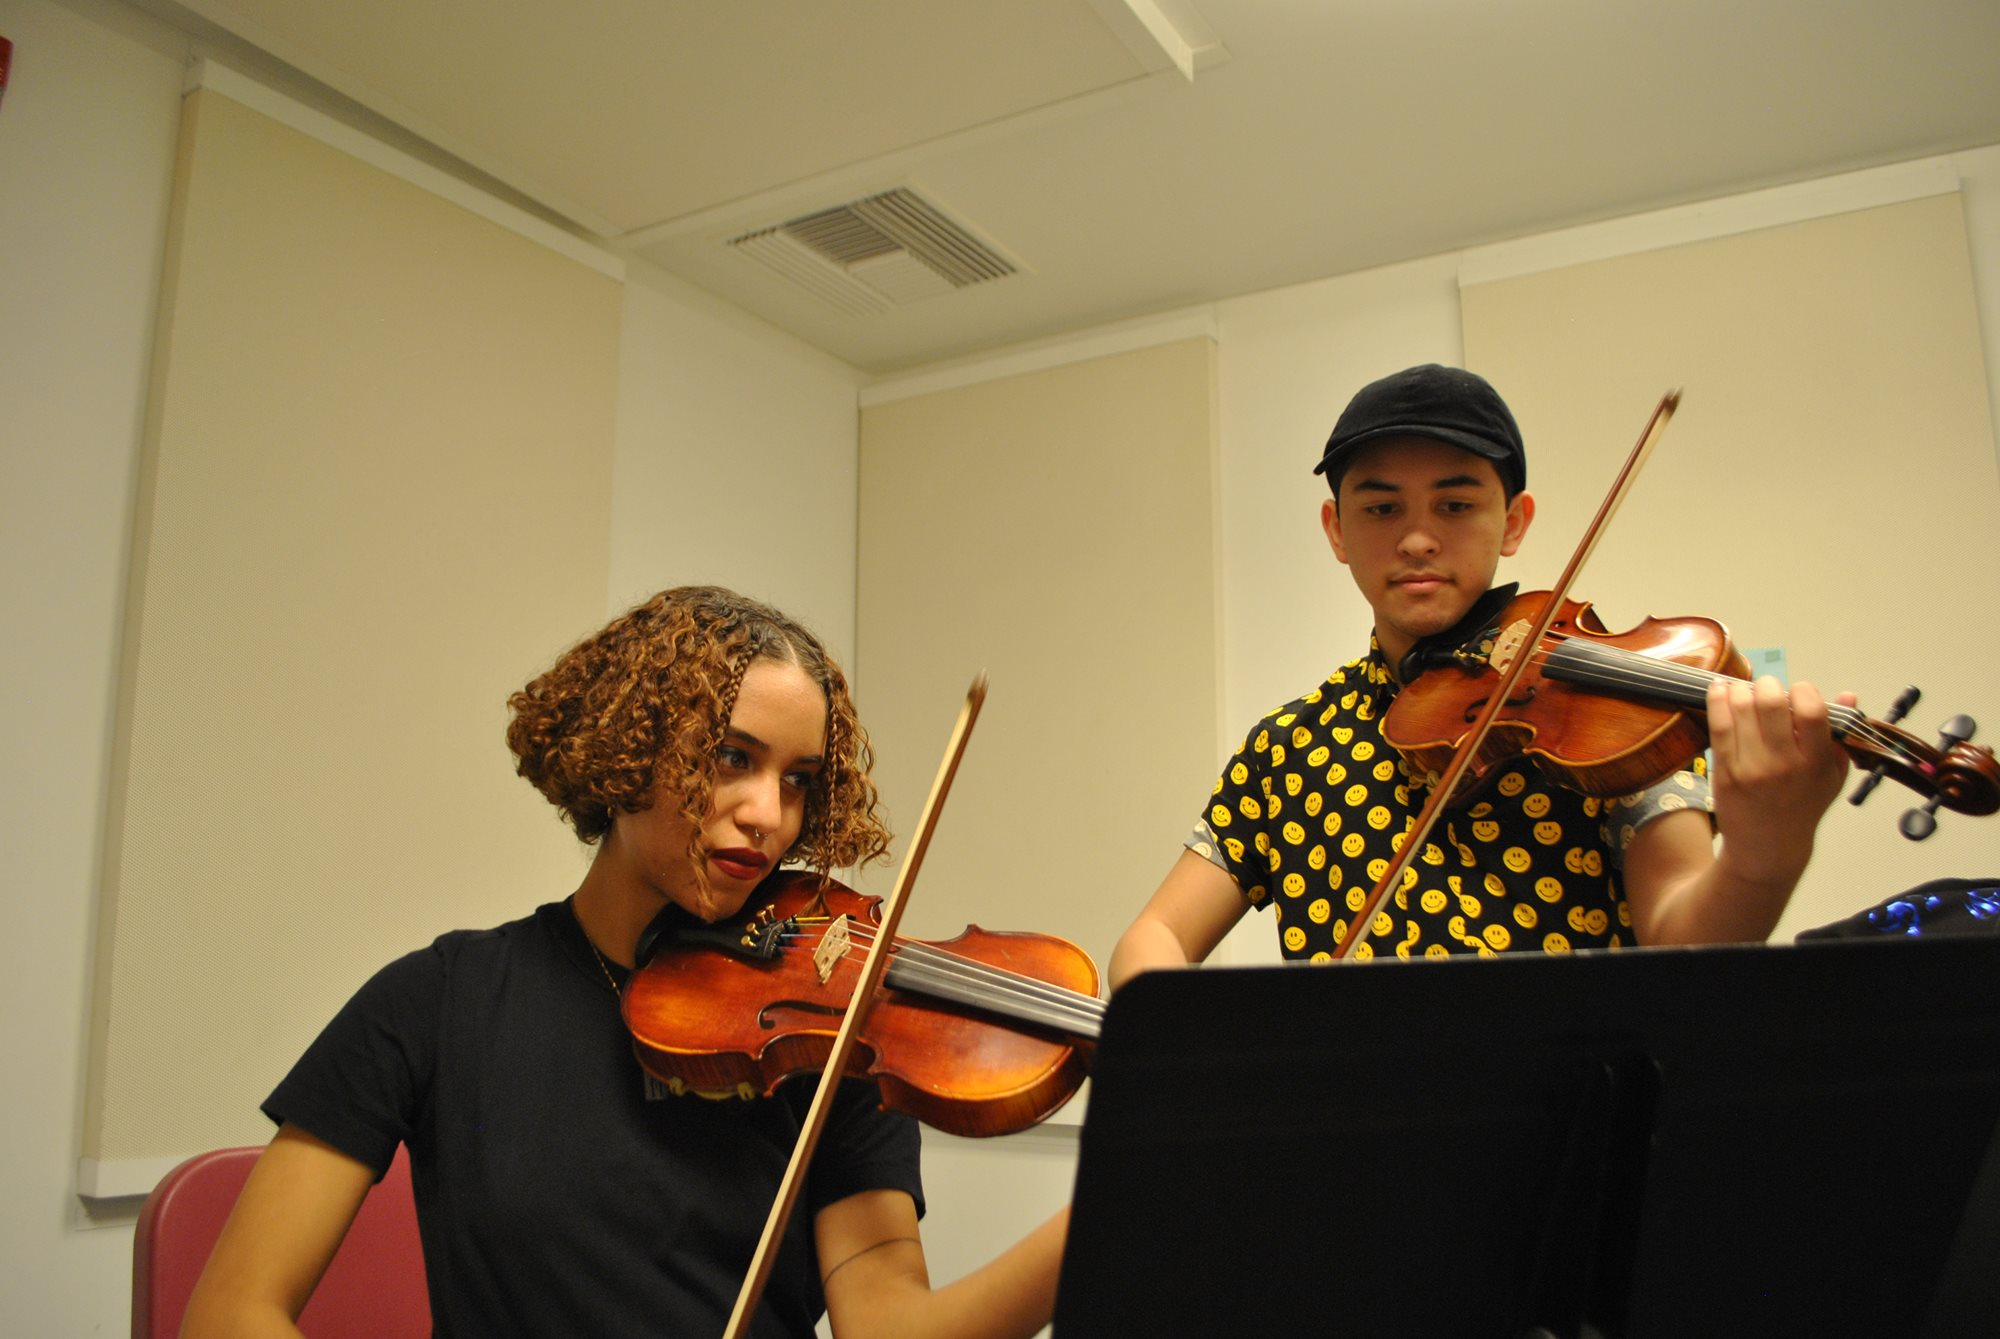 Two students play violin together.